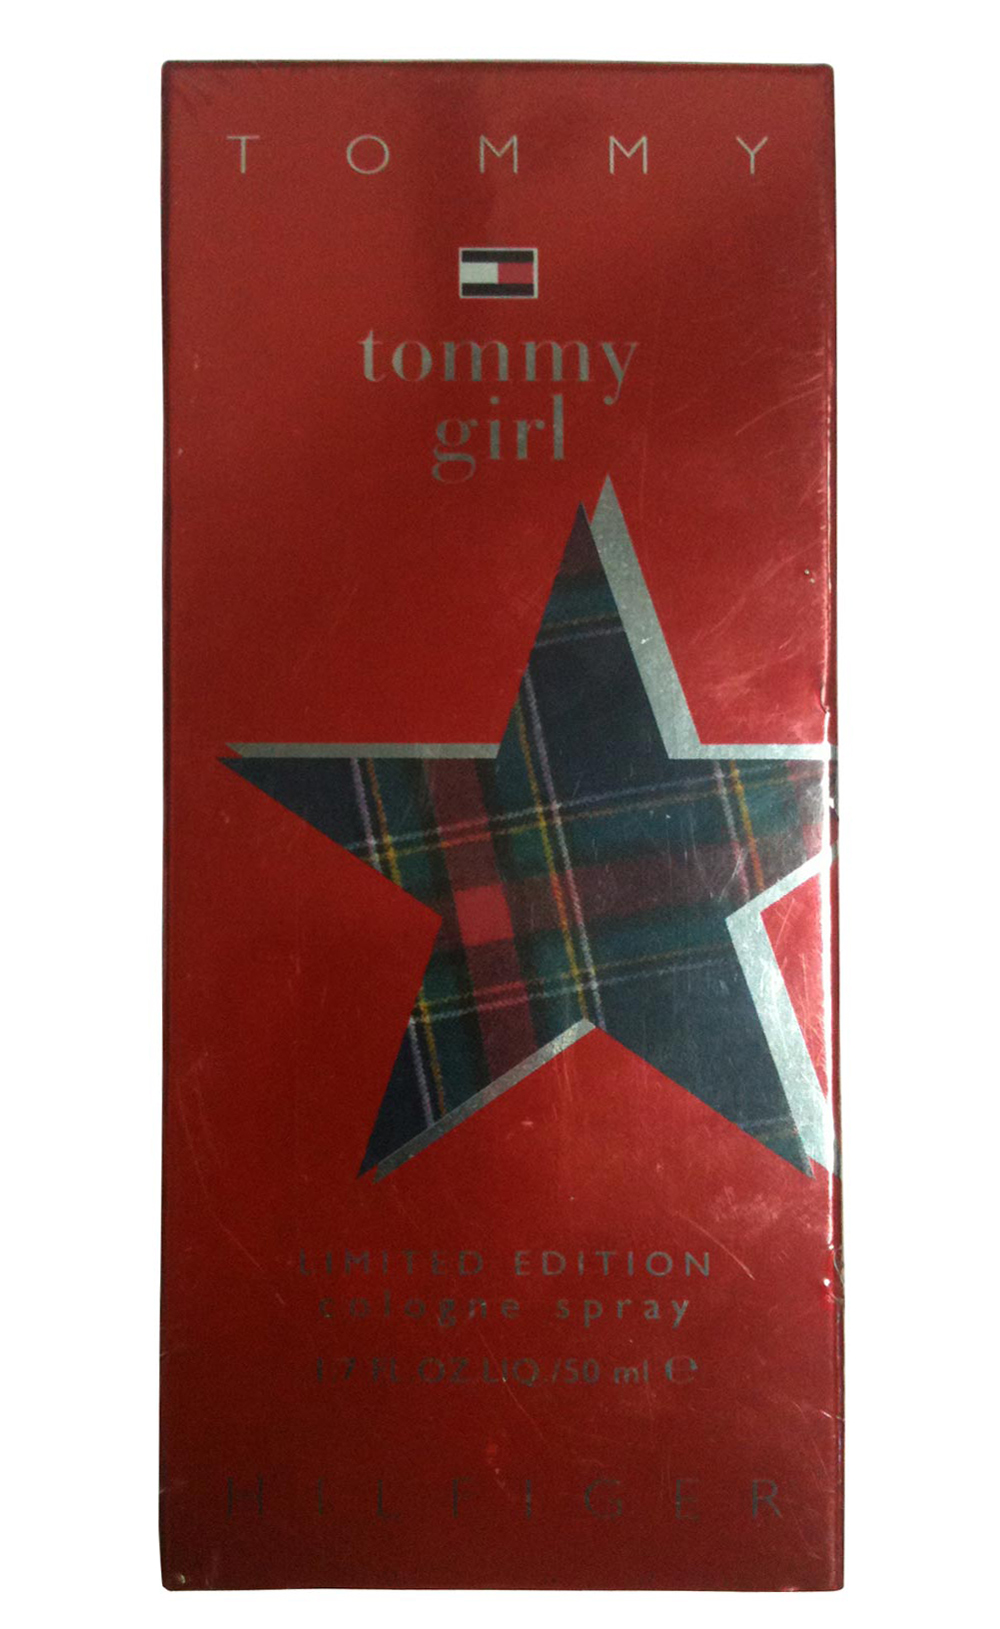 Tommy Hilfiger Tommy Girl Limited Edition Cologne Spray for women 50ml